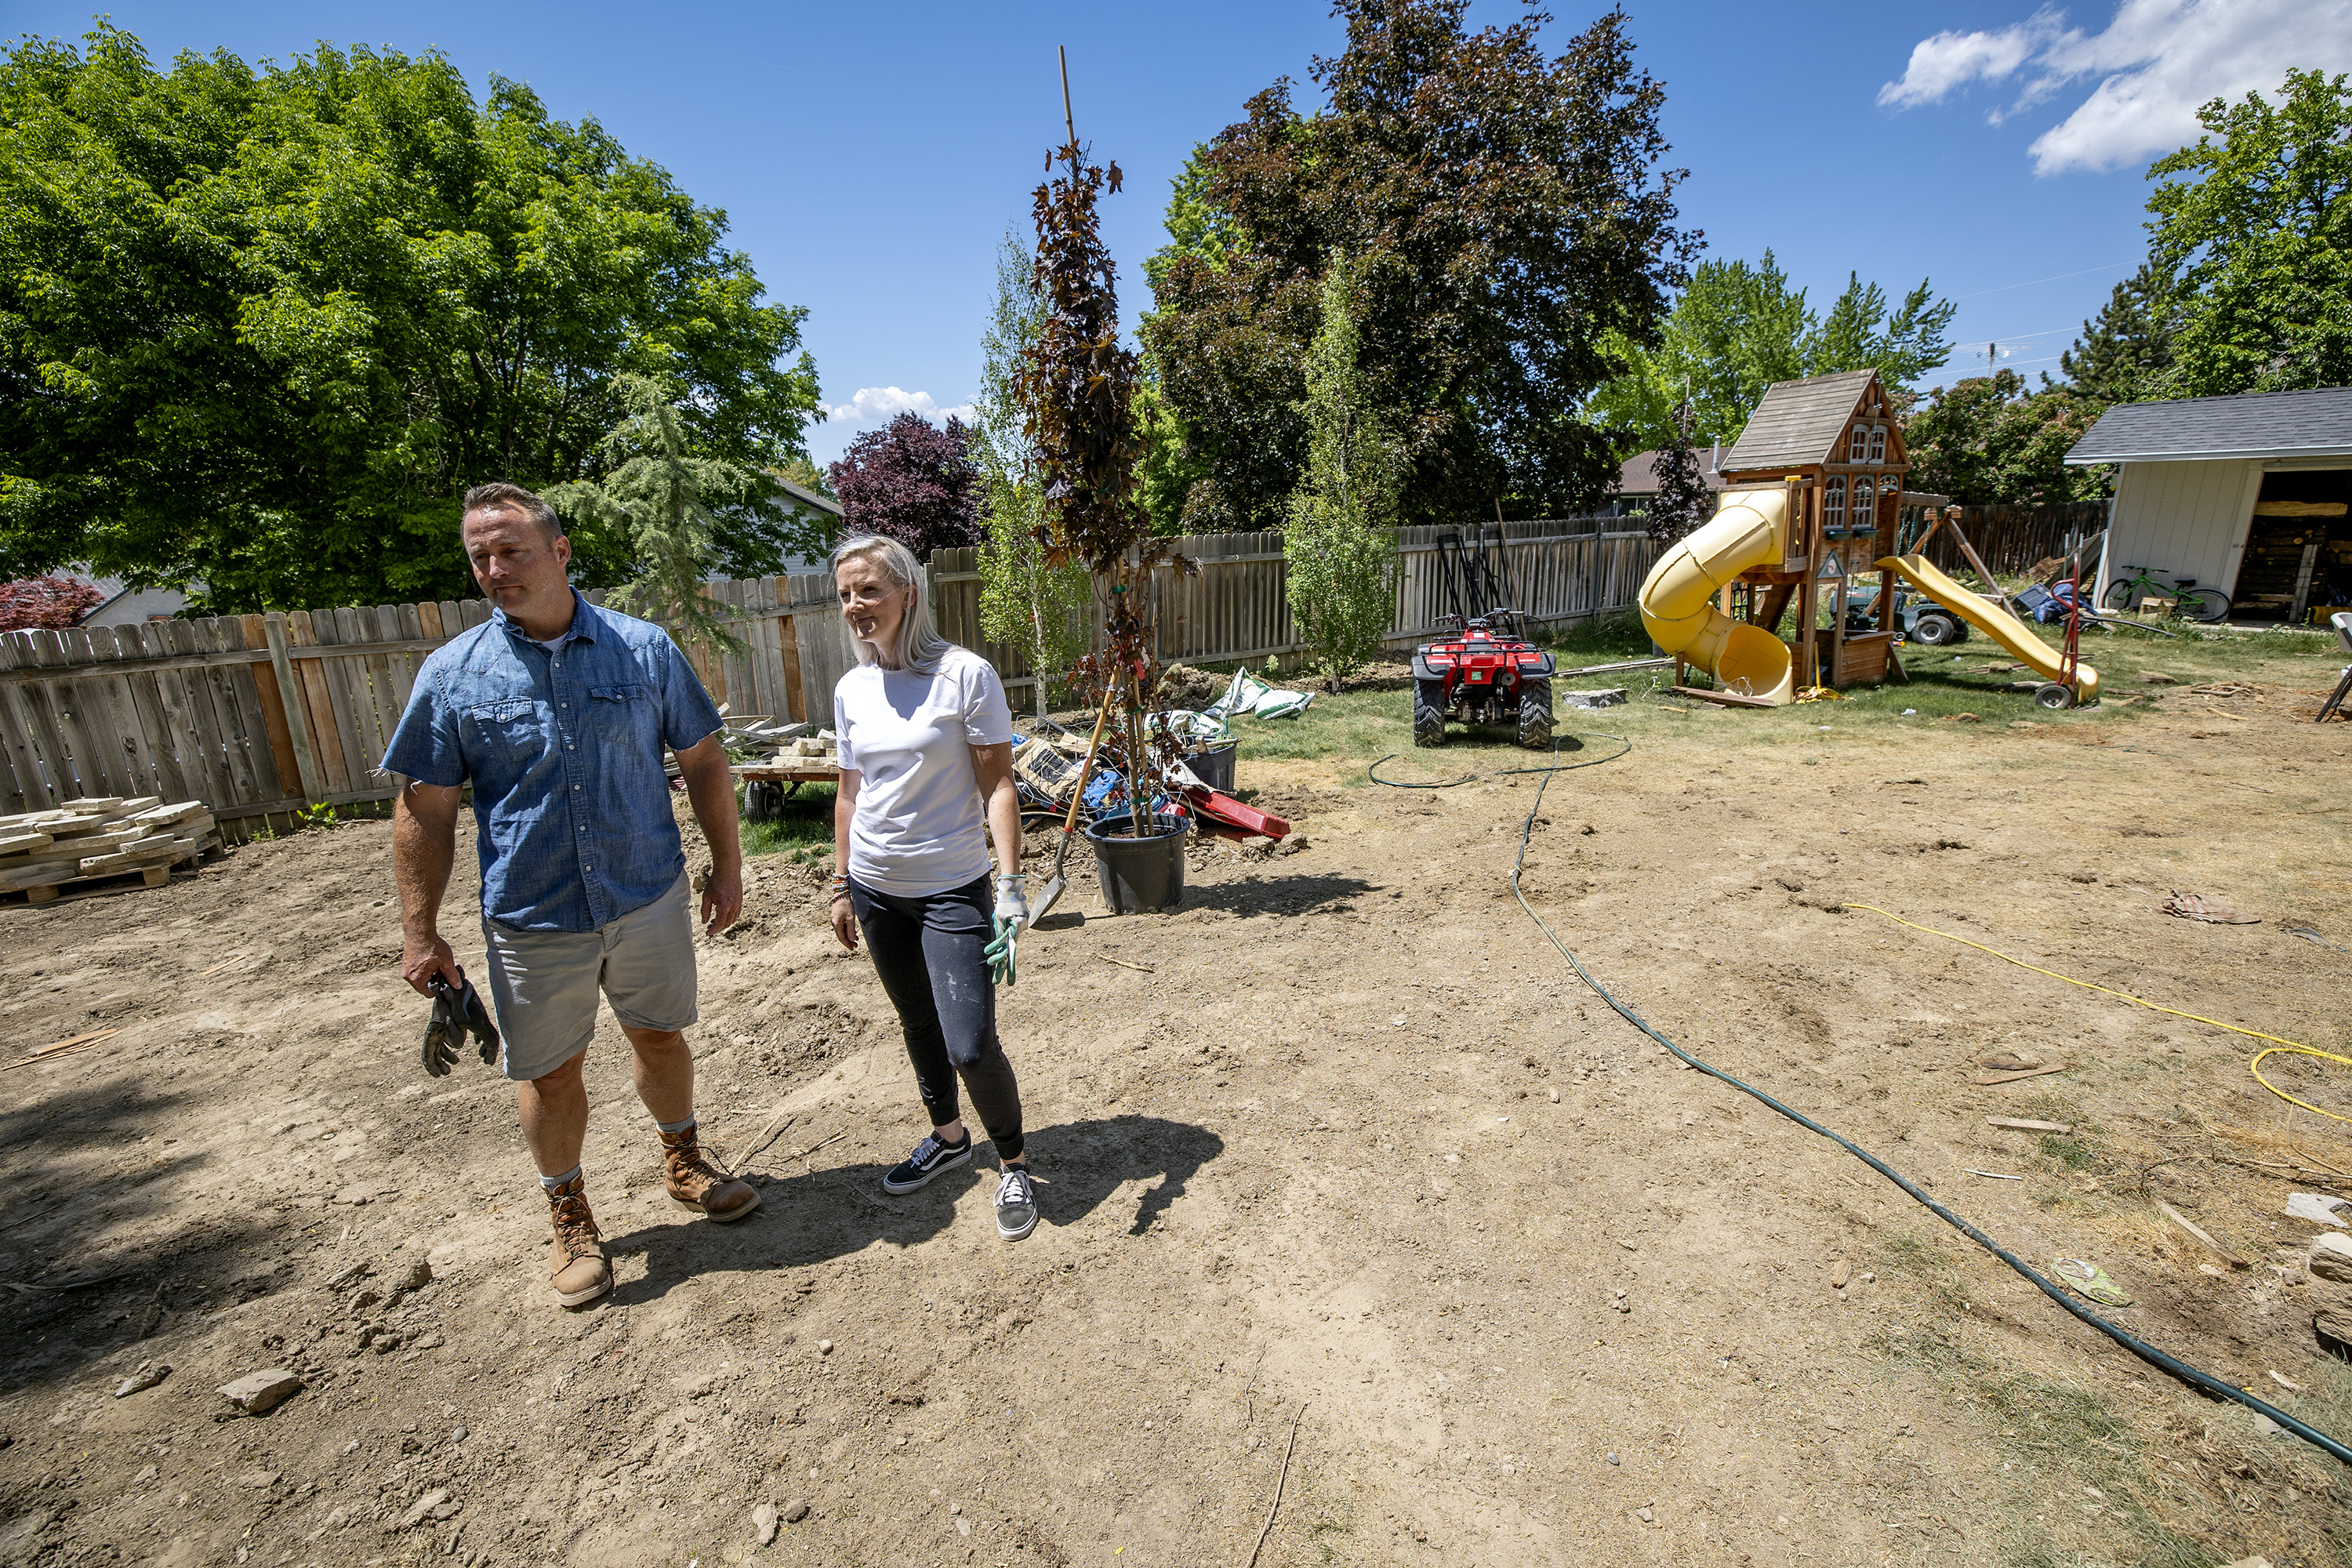 Cody Jolley, left, and his wife, Julia, stand in the backyard of their home in Pleasant Grove.